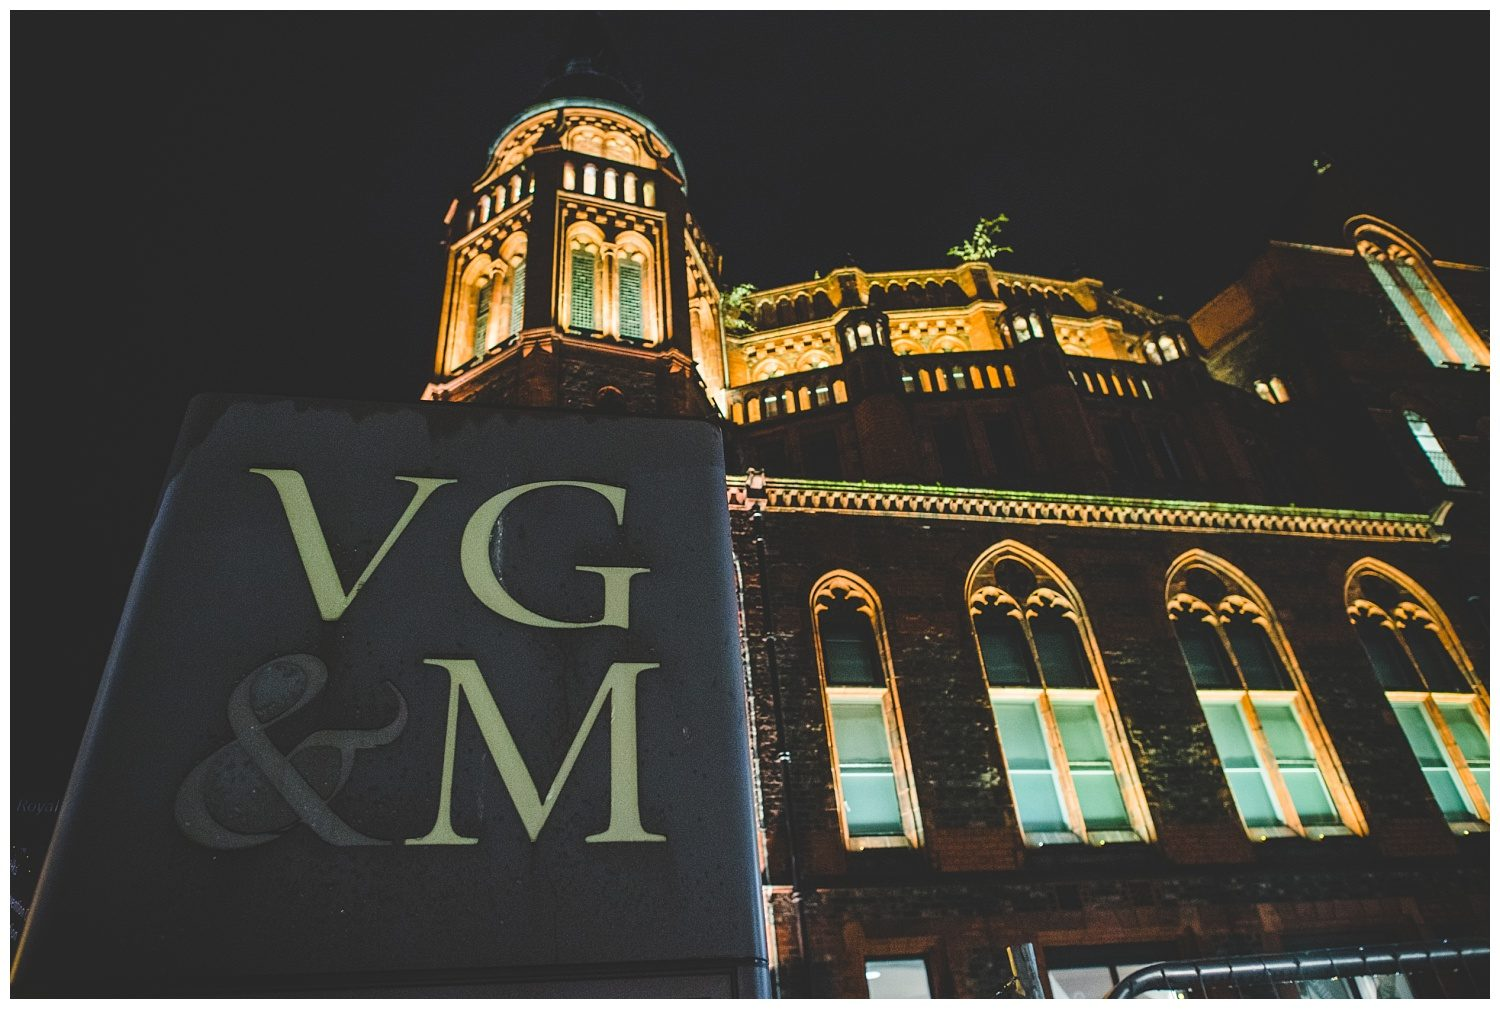 Victoria Gallery & Museum at night